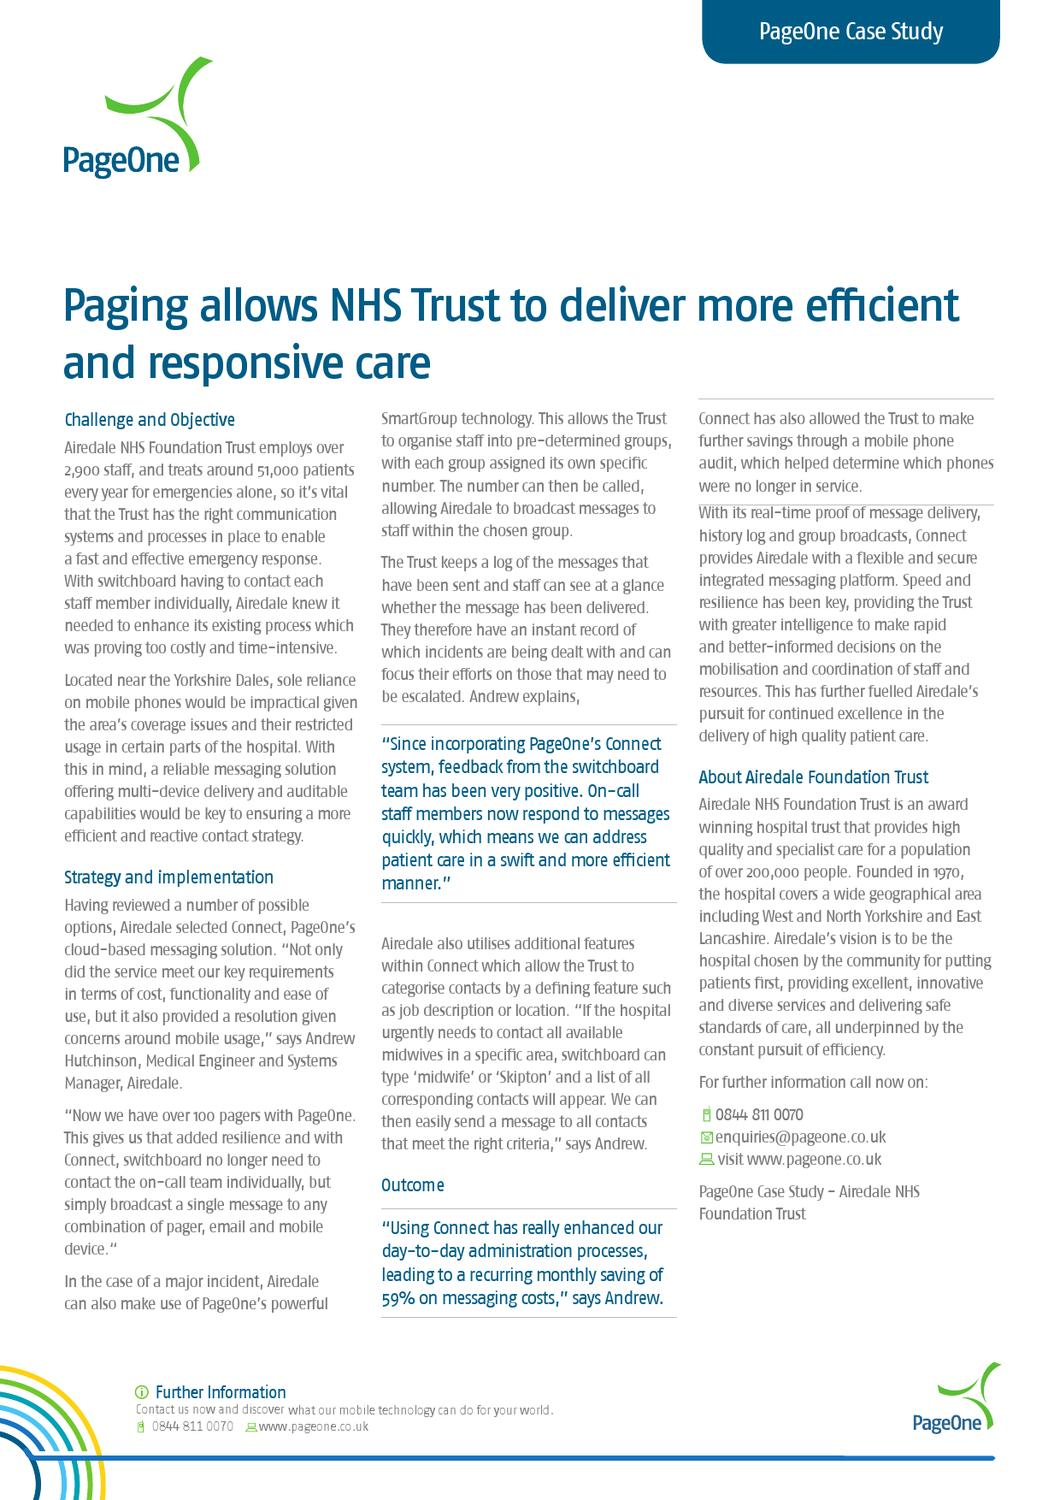 paging allows nhs trust to deliver more effcient and